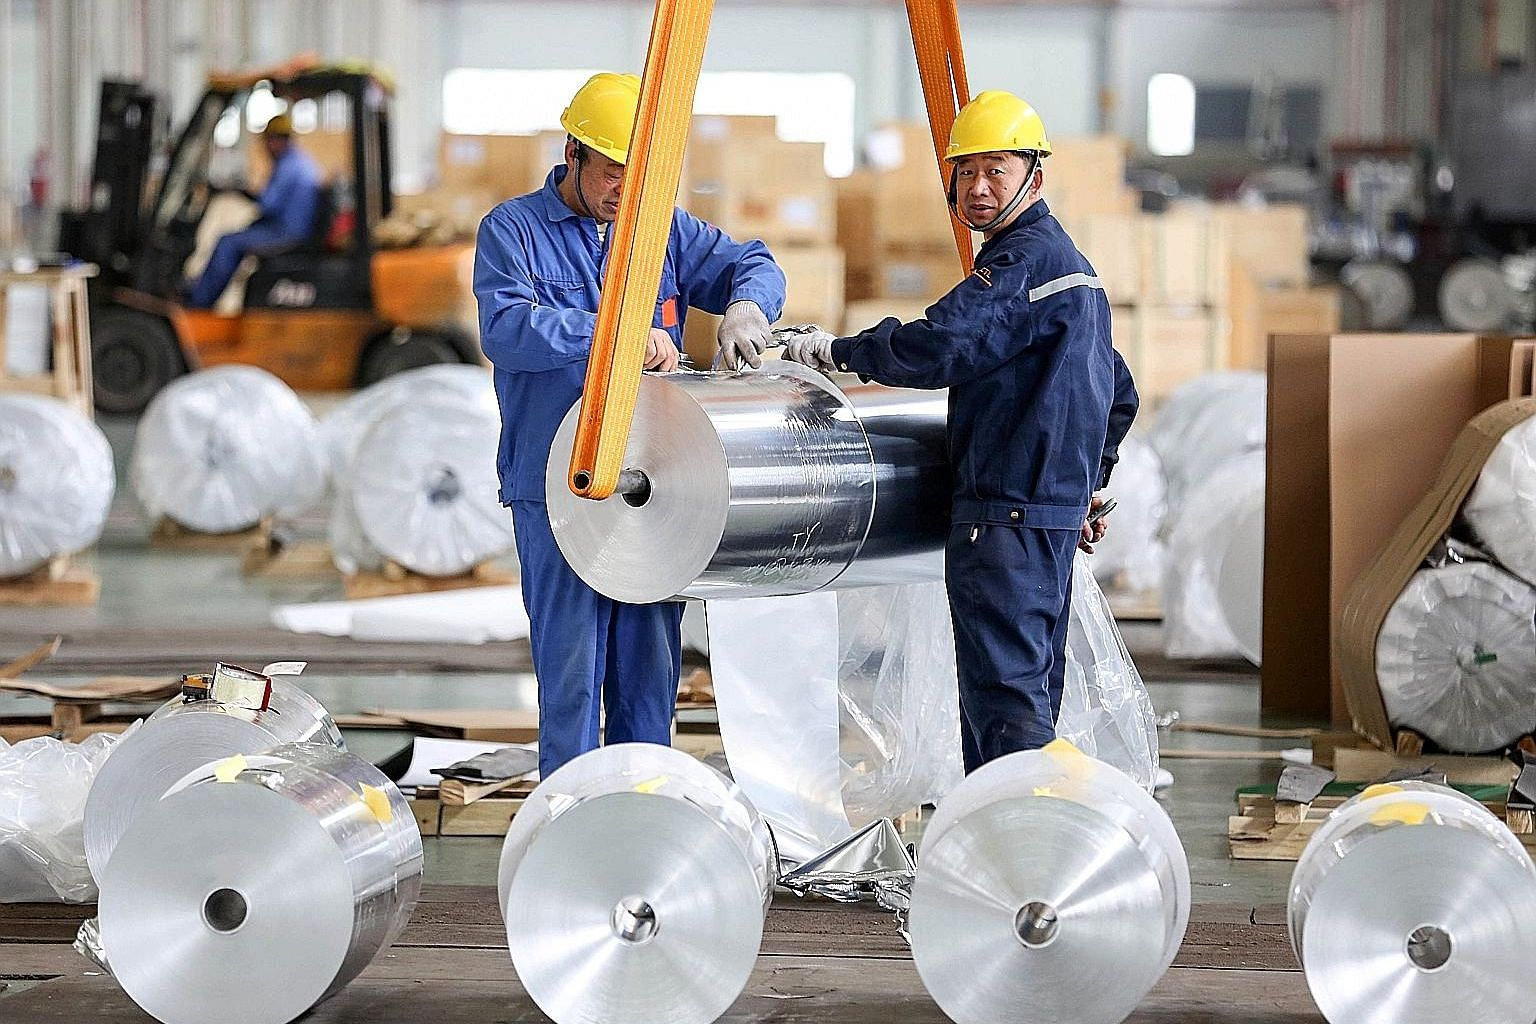 Workers packing aluminium sheets at a factory in Huaibei, in China's Anhui province. The country's manufacturing Purchasing Managers' Index stood at 50.1 last month, down from 50.5 in March.